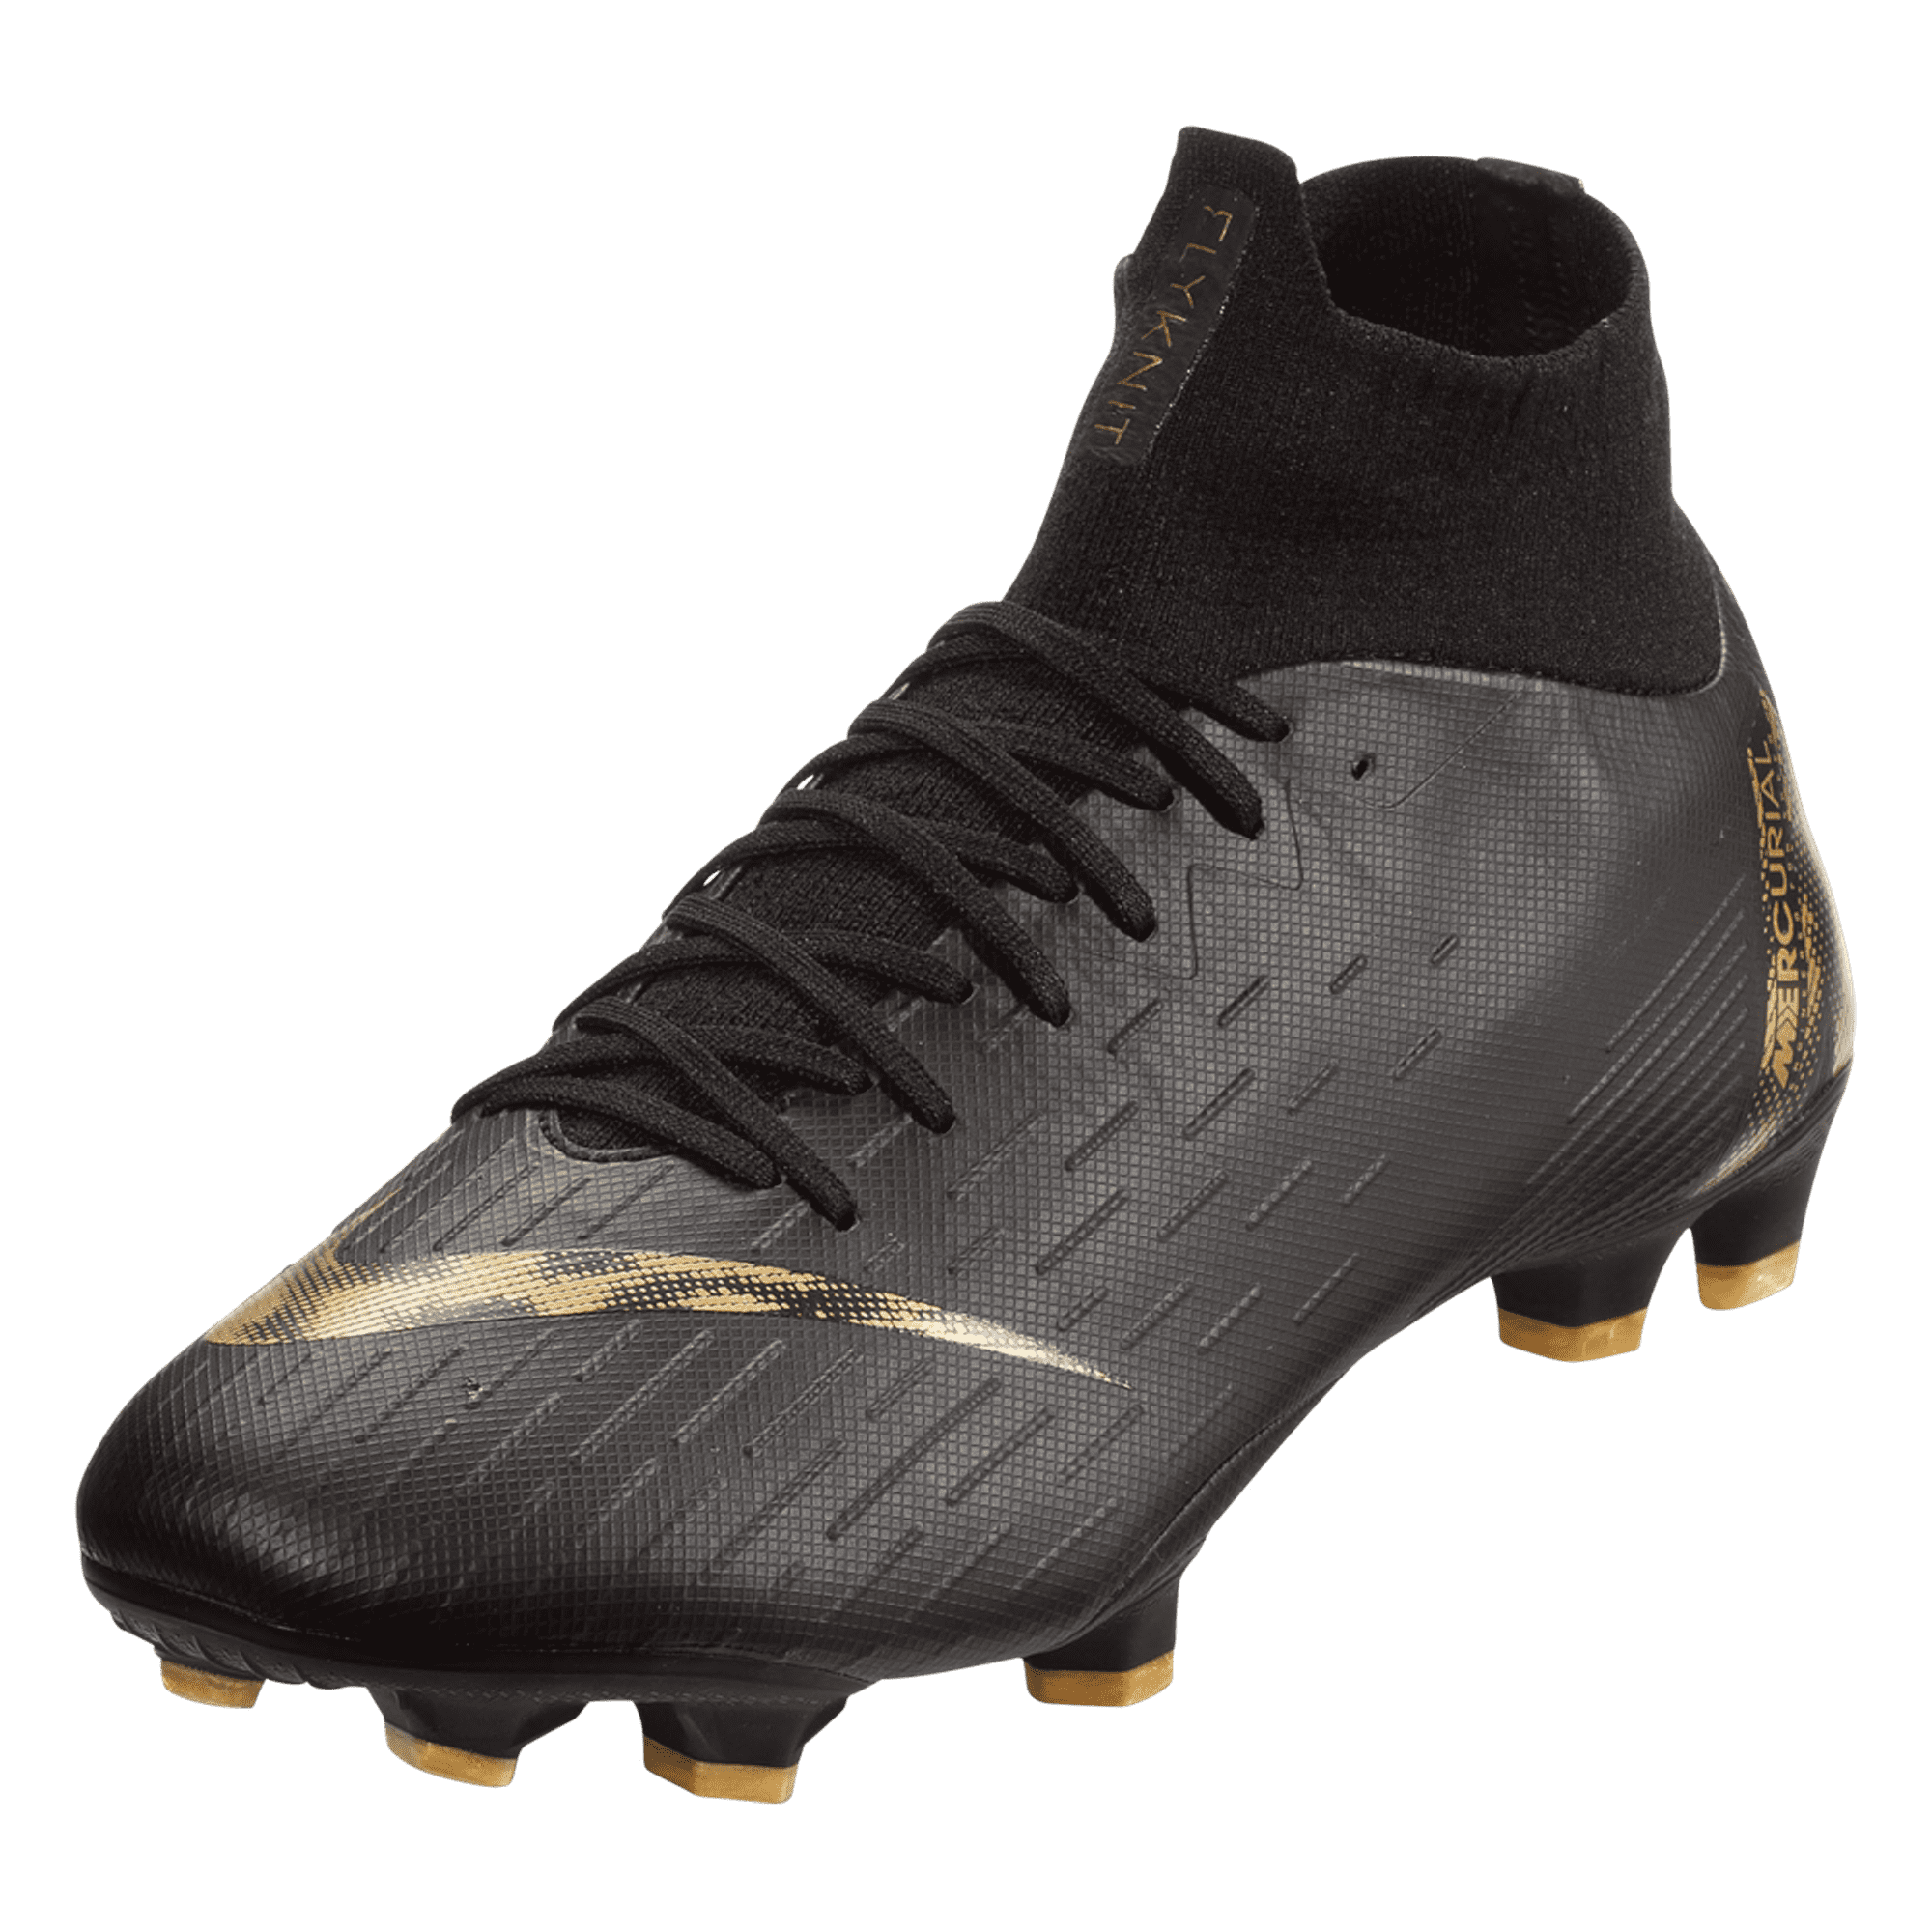 timeless design a3012 ad721 Nike Mercurial Superfly VI Pro FG Soccer Cleat – Black Gold